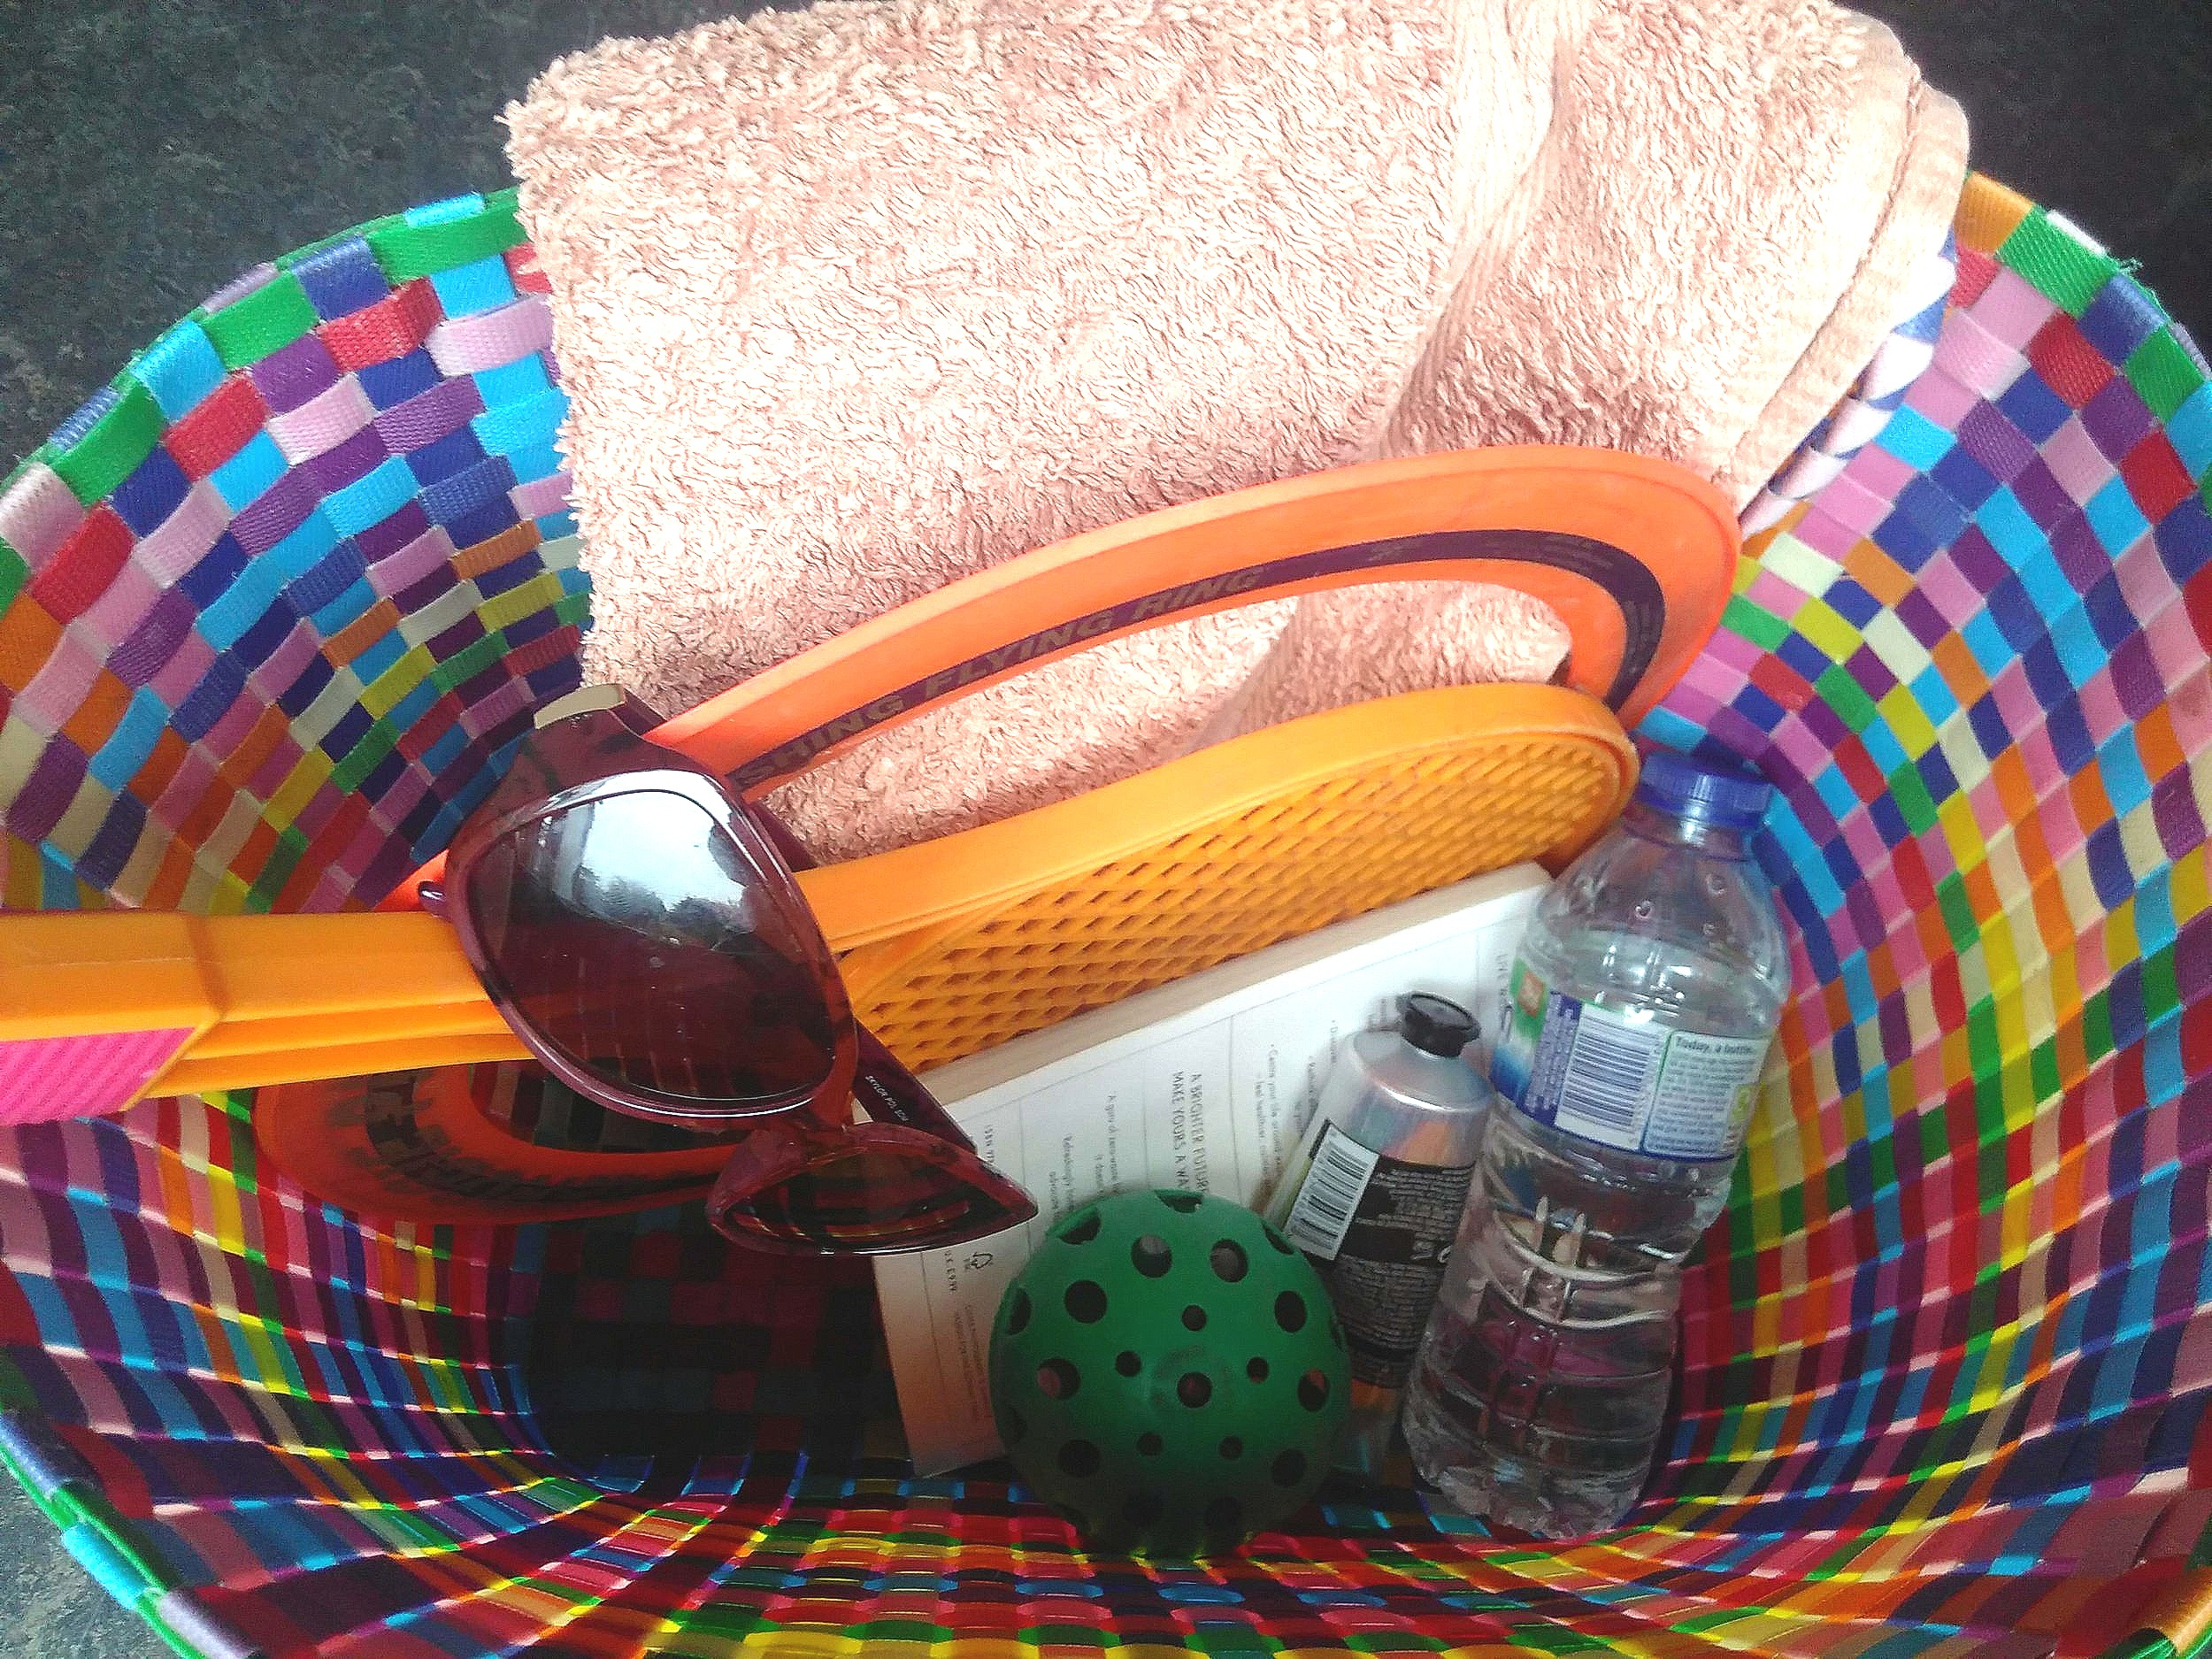 A bag full of beach-related items